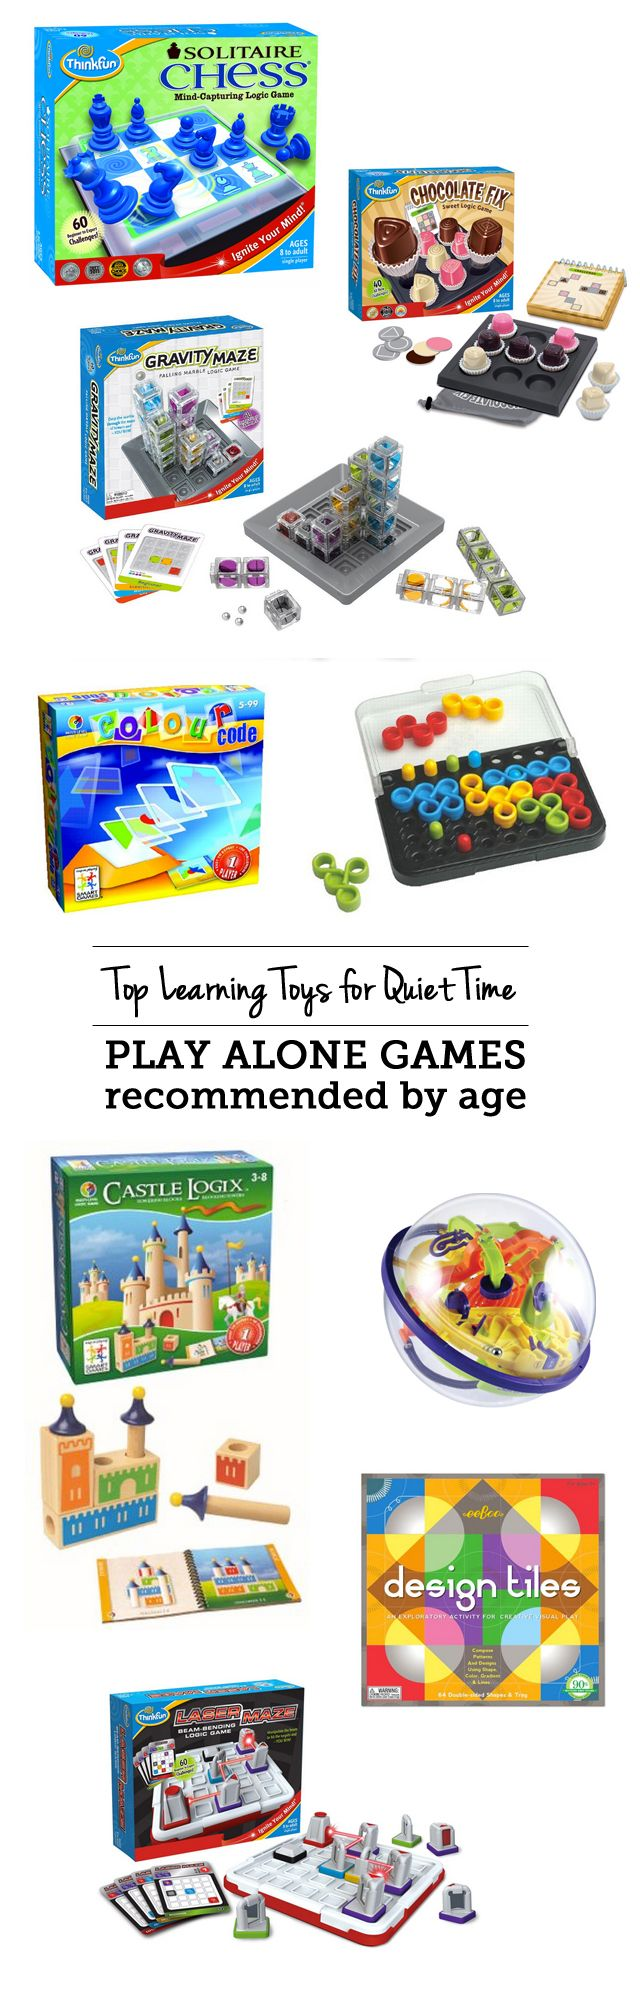 Top learning toys for quiet time: play alone games - love that my kids are building brainpower with these while I get stuff done or have one-on-one time with their sibling.